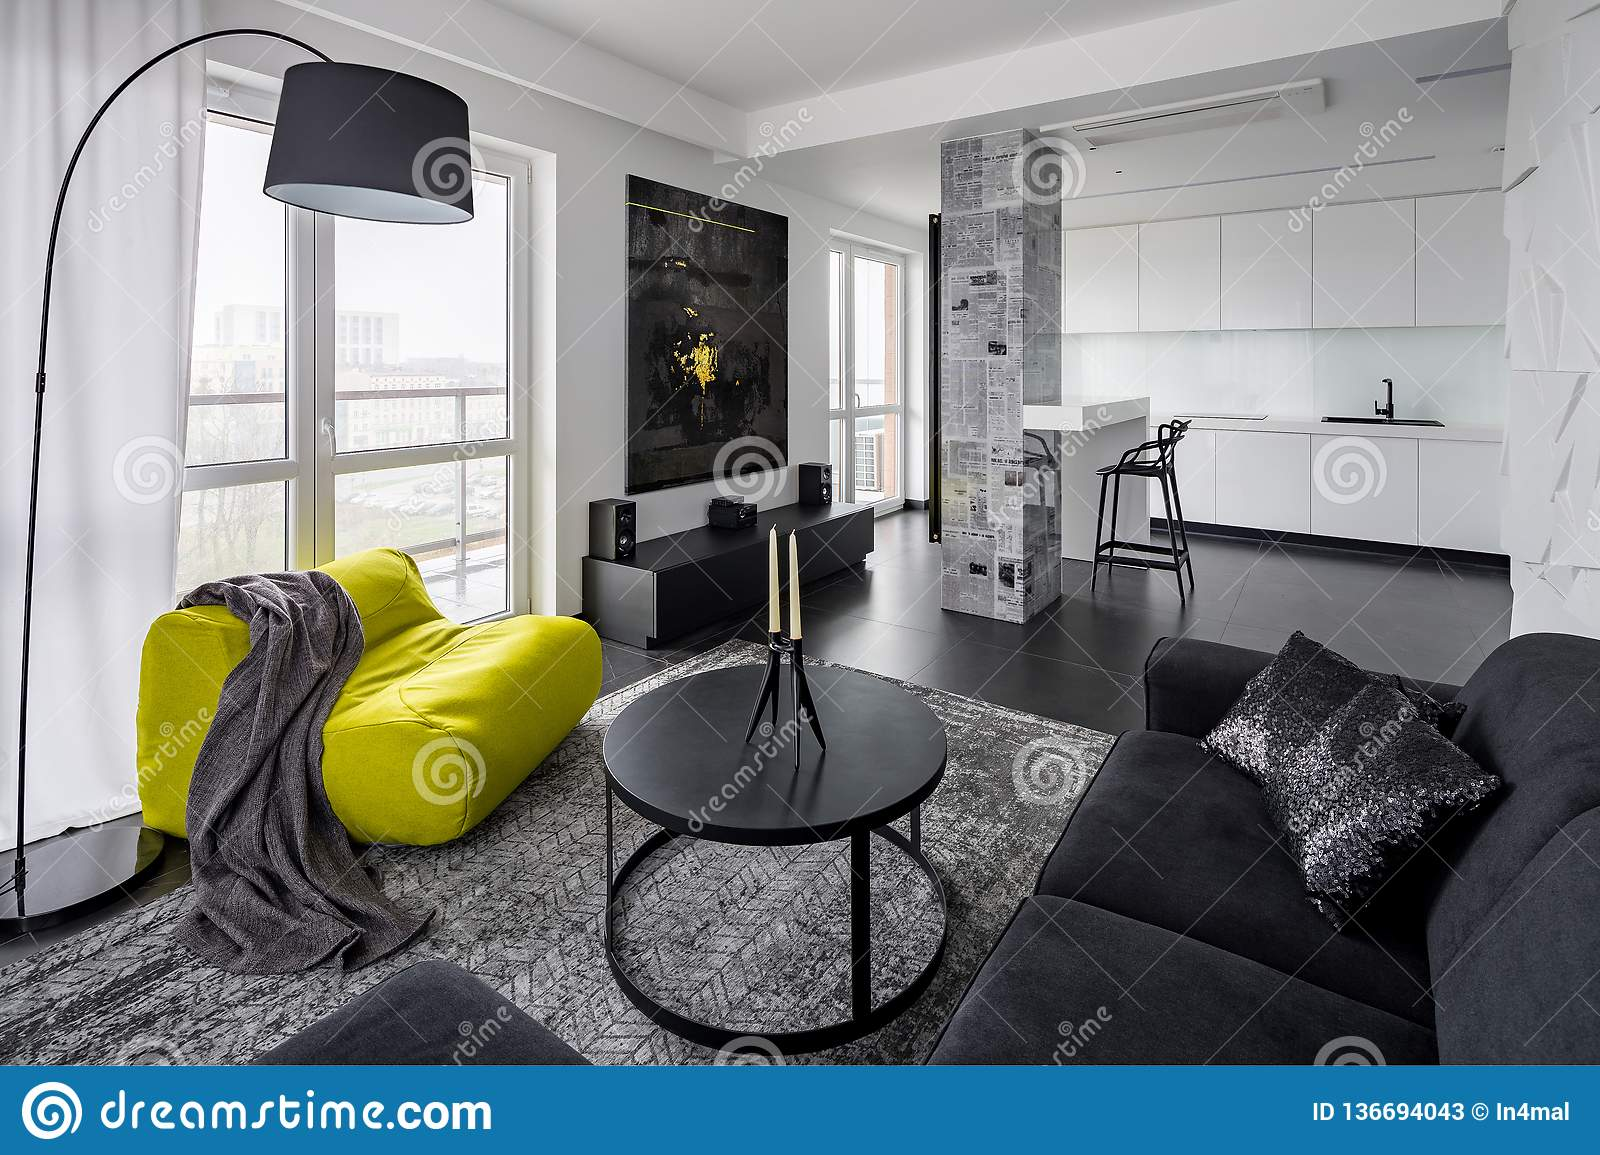 Black And White Living Room Stock Image - Image of black ...